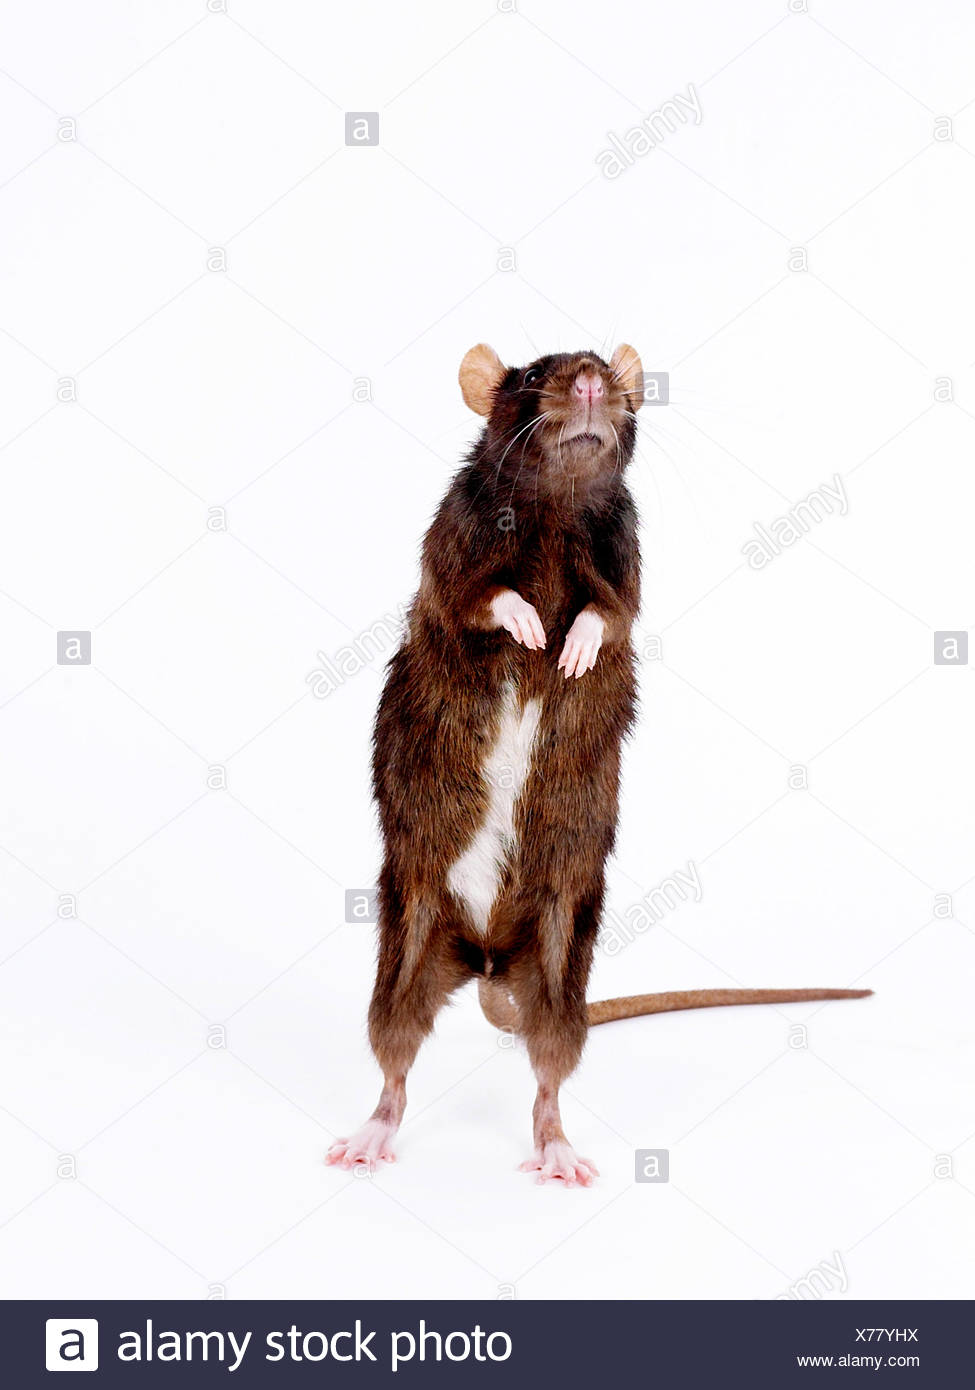 A common brown rat standing up and sniffing - Stock Image